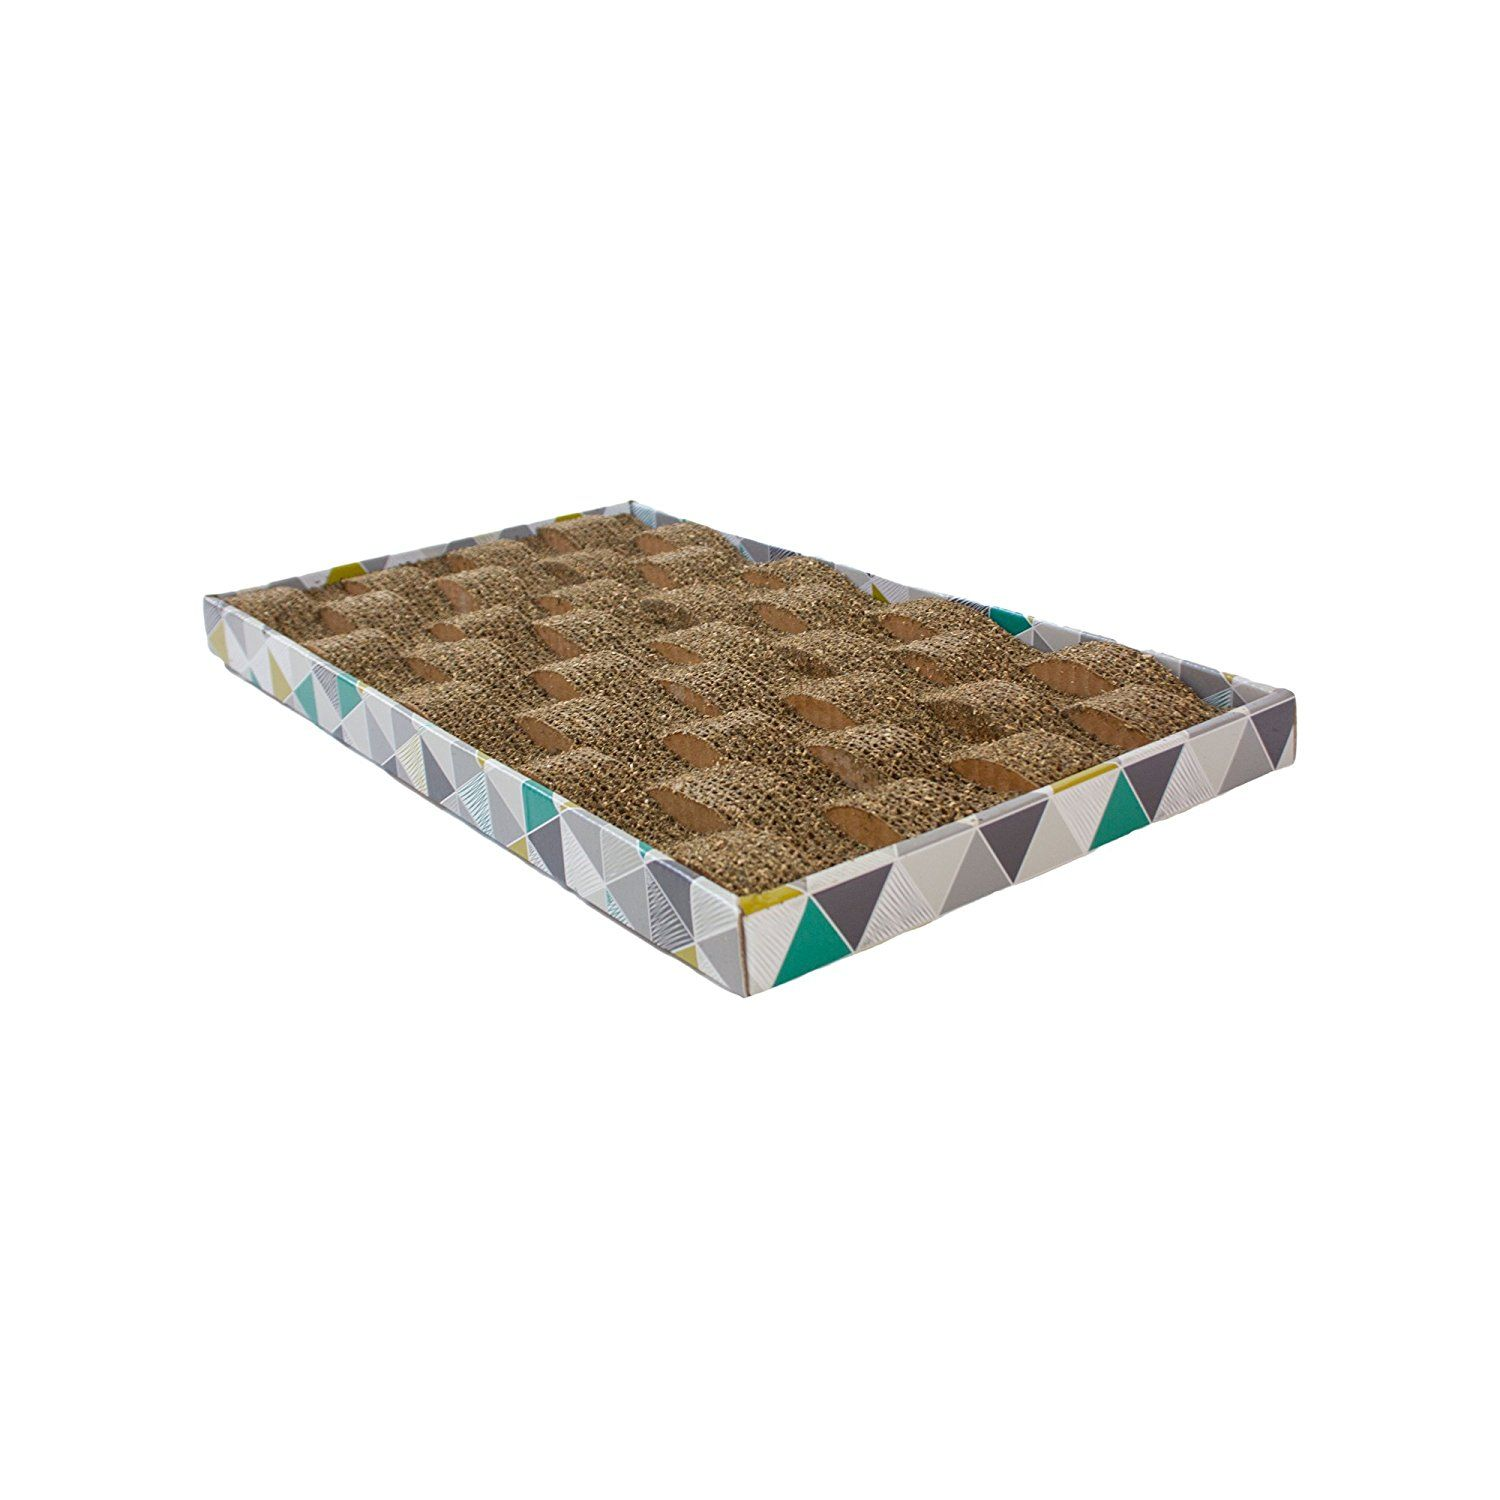 Petstages Wavy Scratcher Catnip Scratching Post Station for Cats